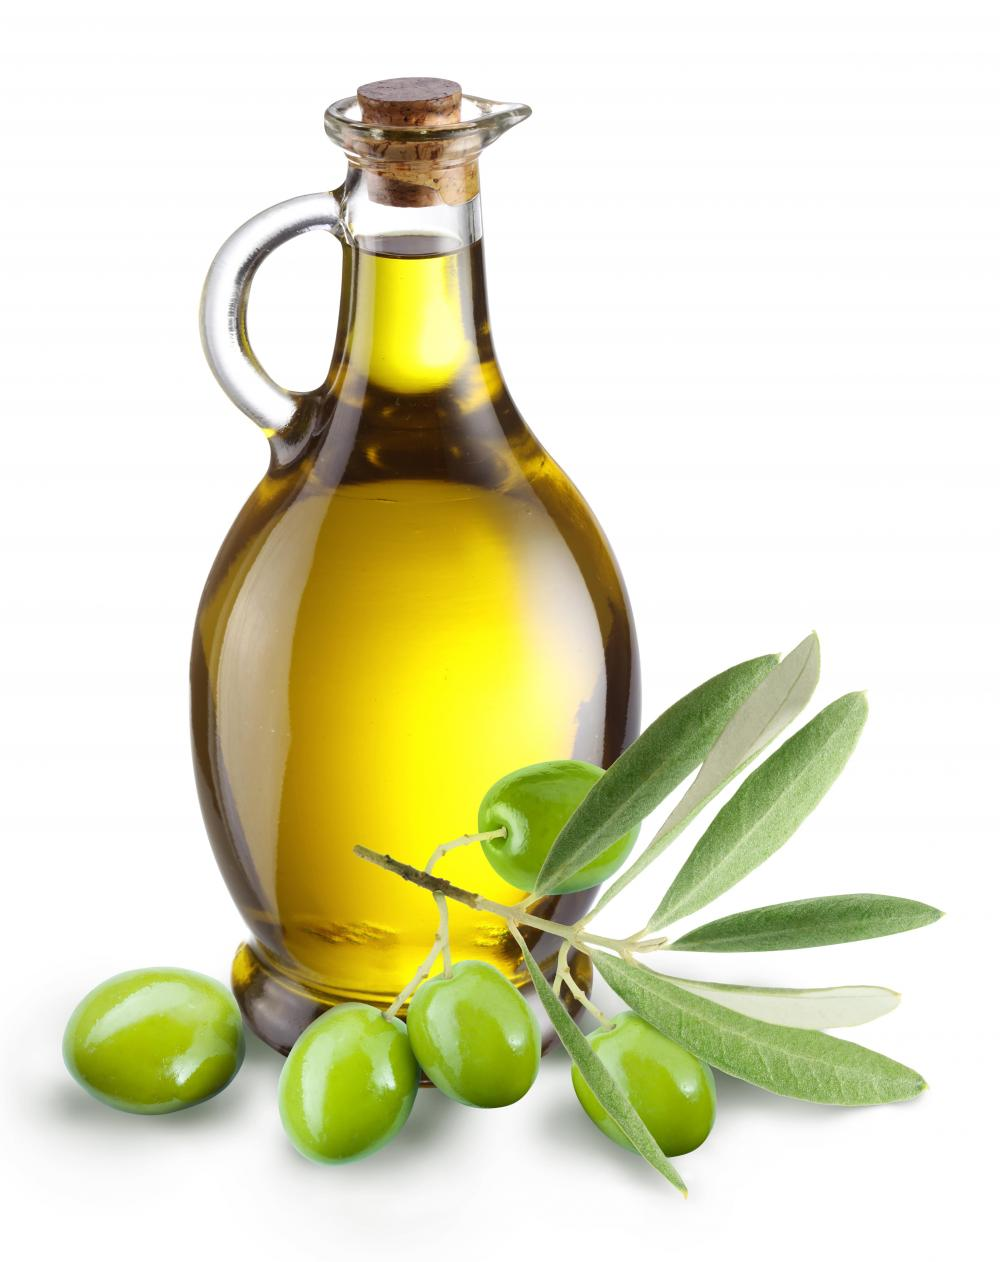 olive oil, a magical elixer